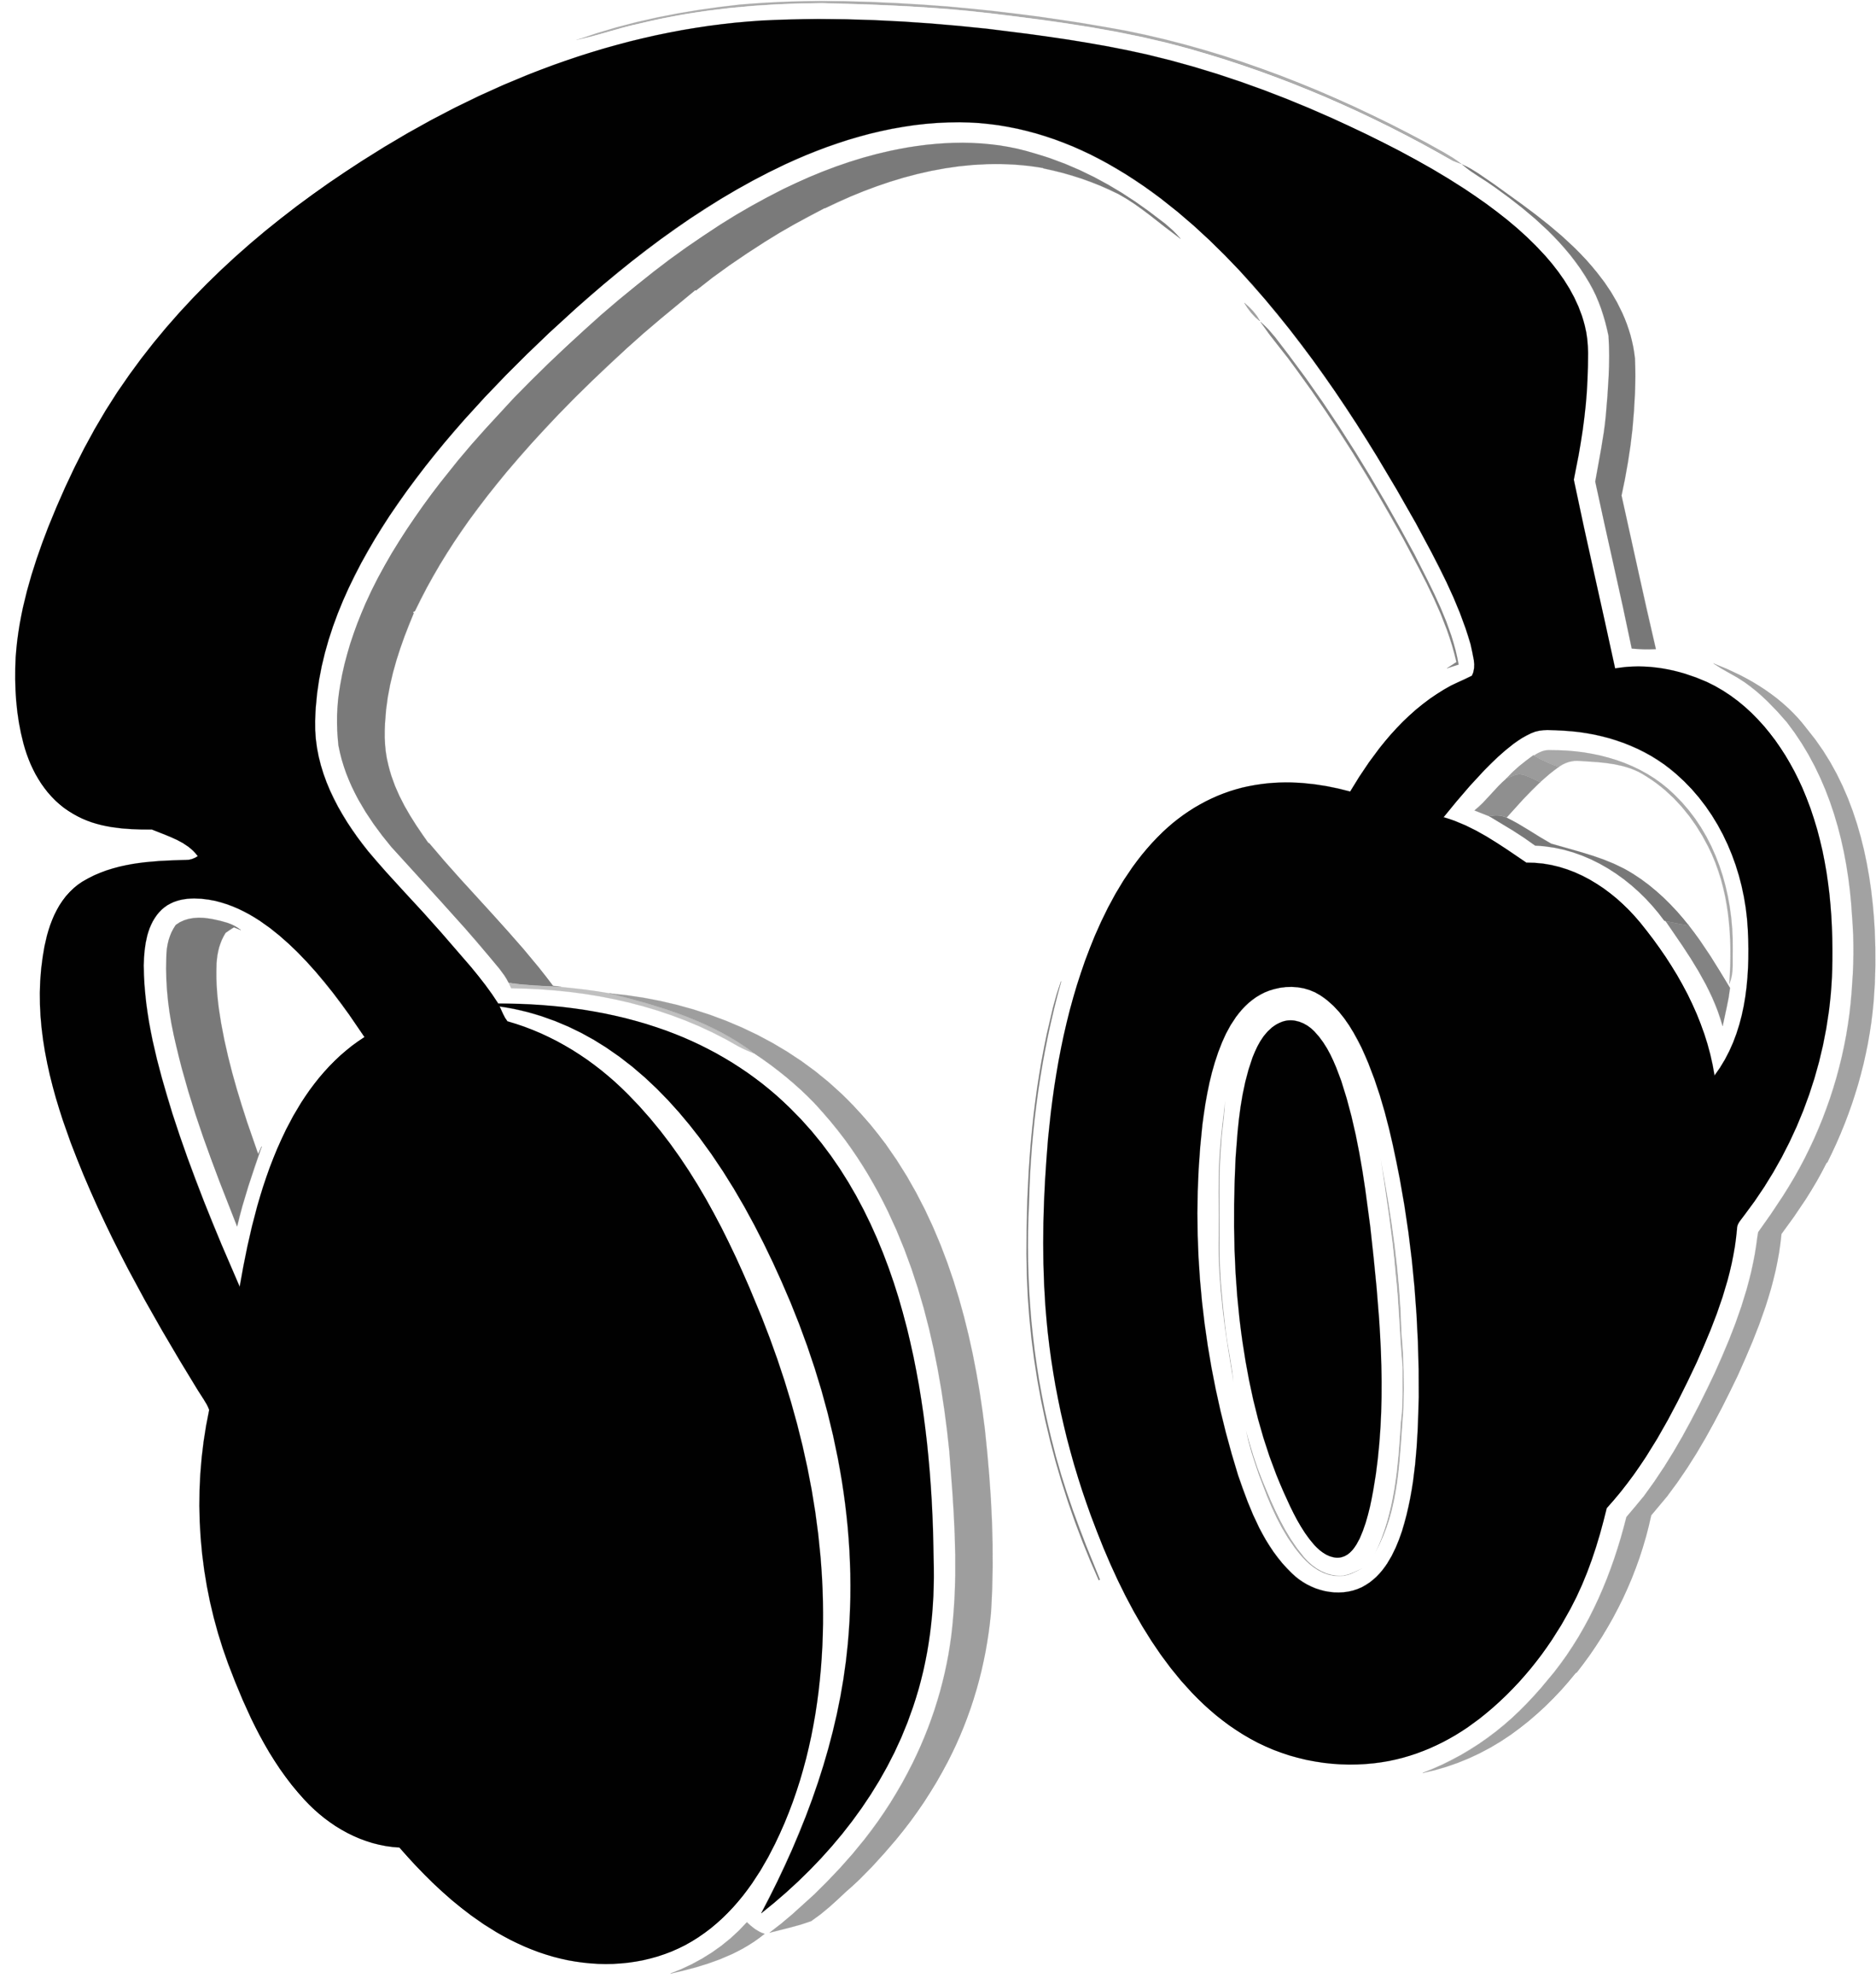 Icon icons png free. Listen clipart headphones